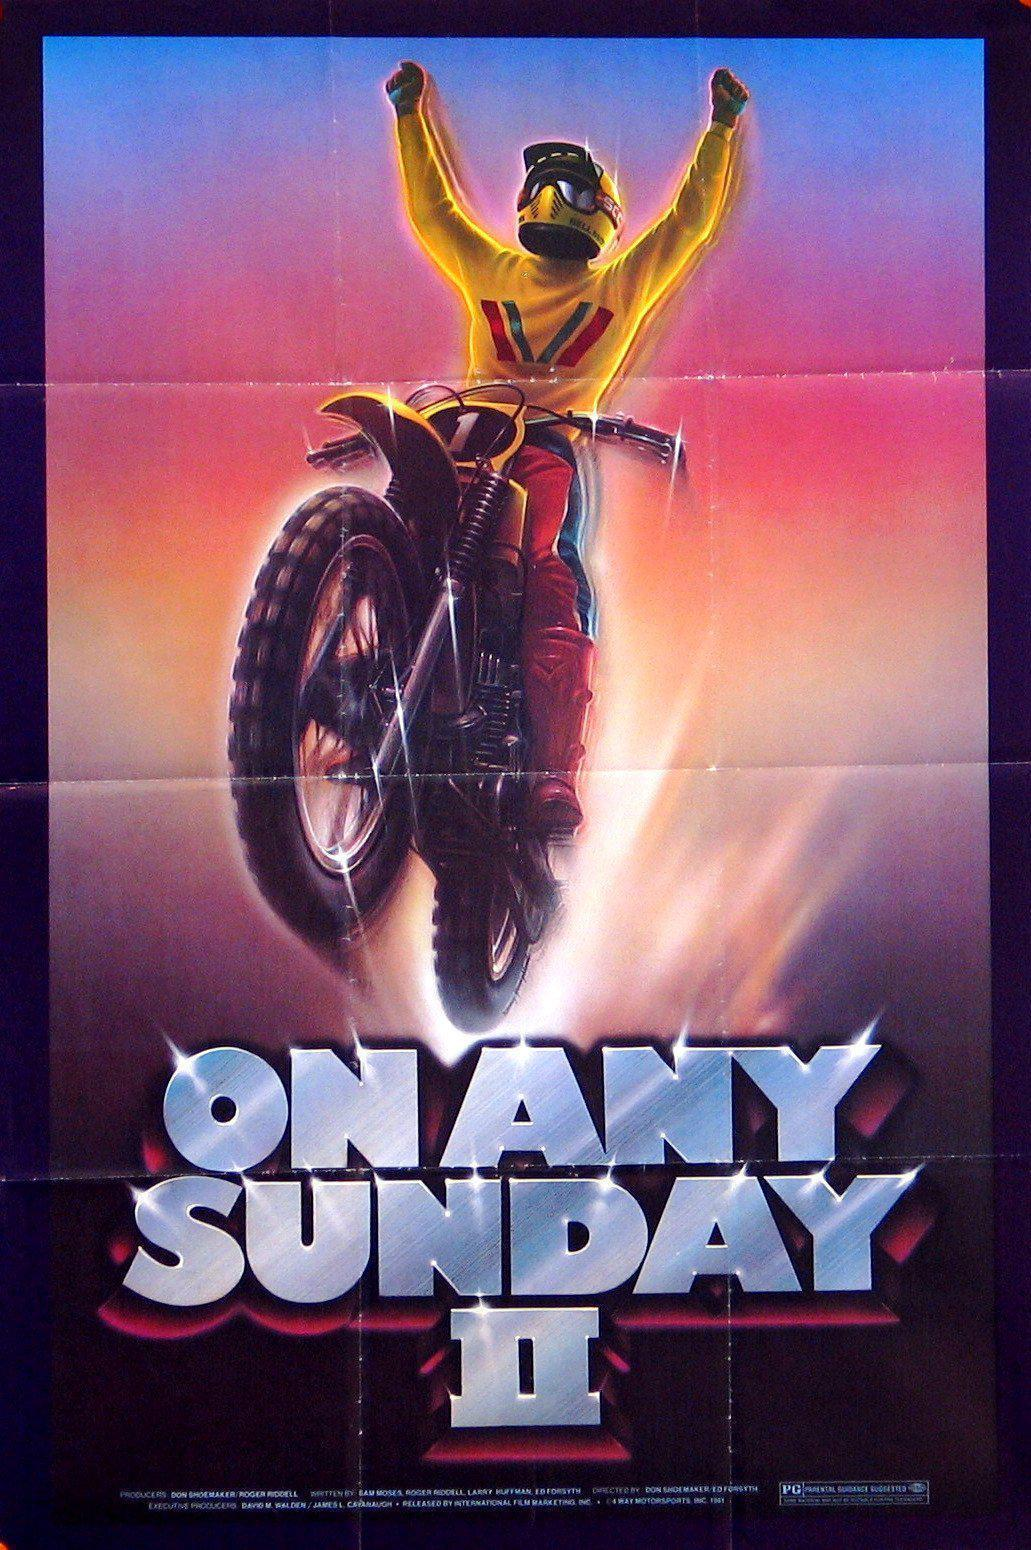 On Any Sunday II 1 Sheet (27x41) Original Vintage Movie Poster